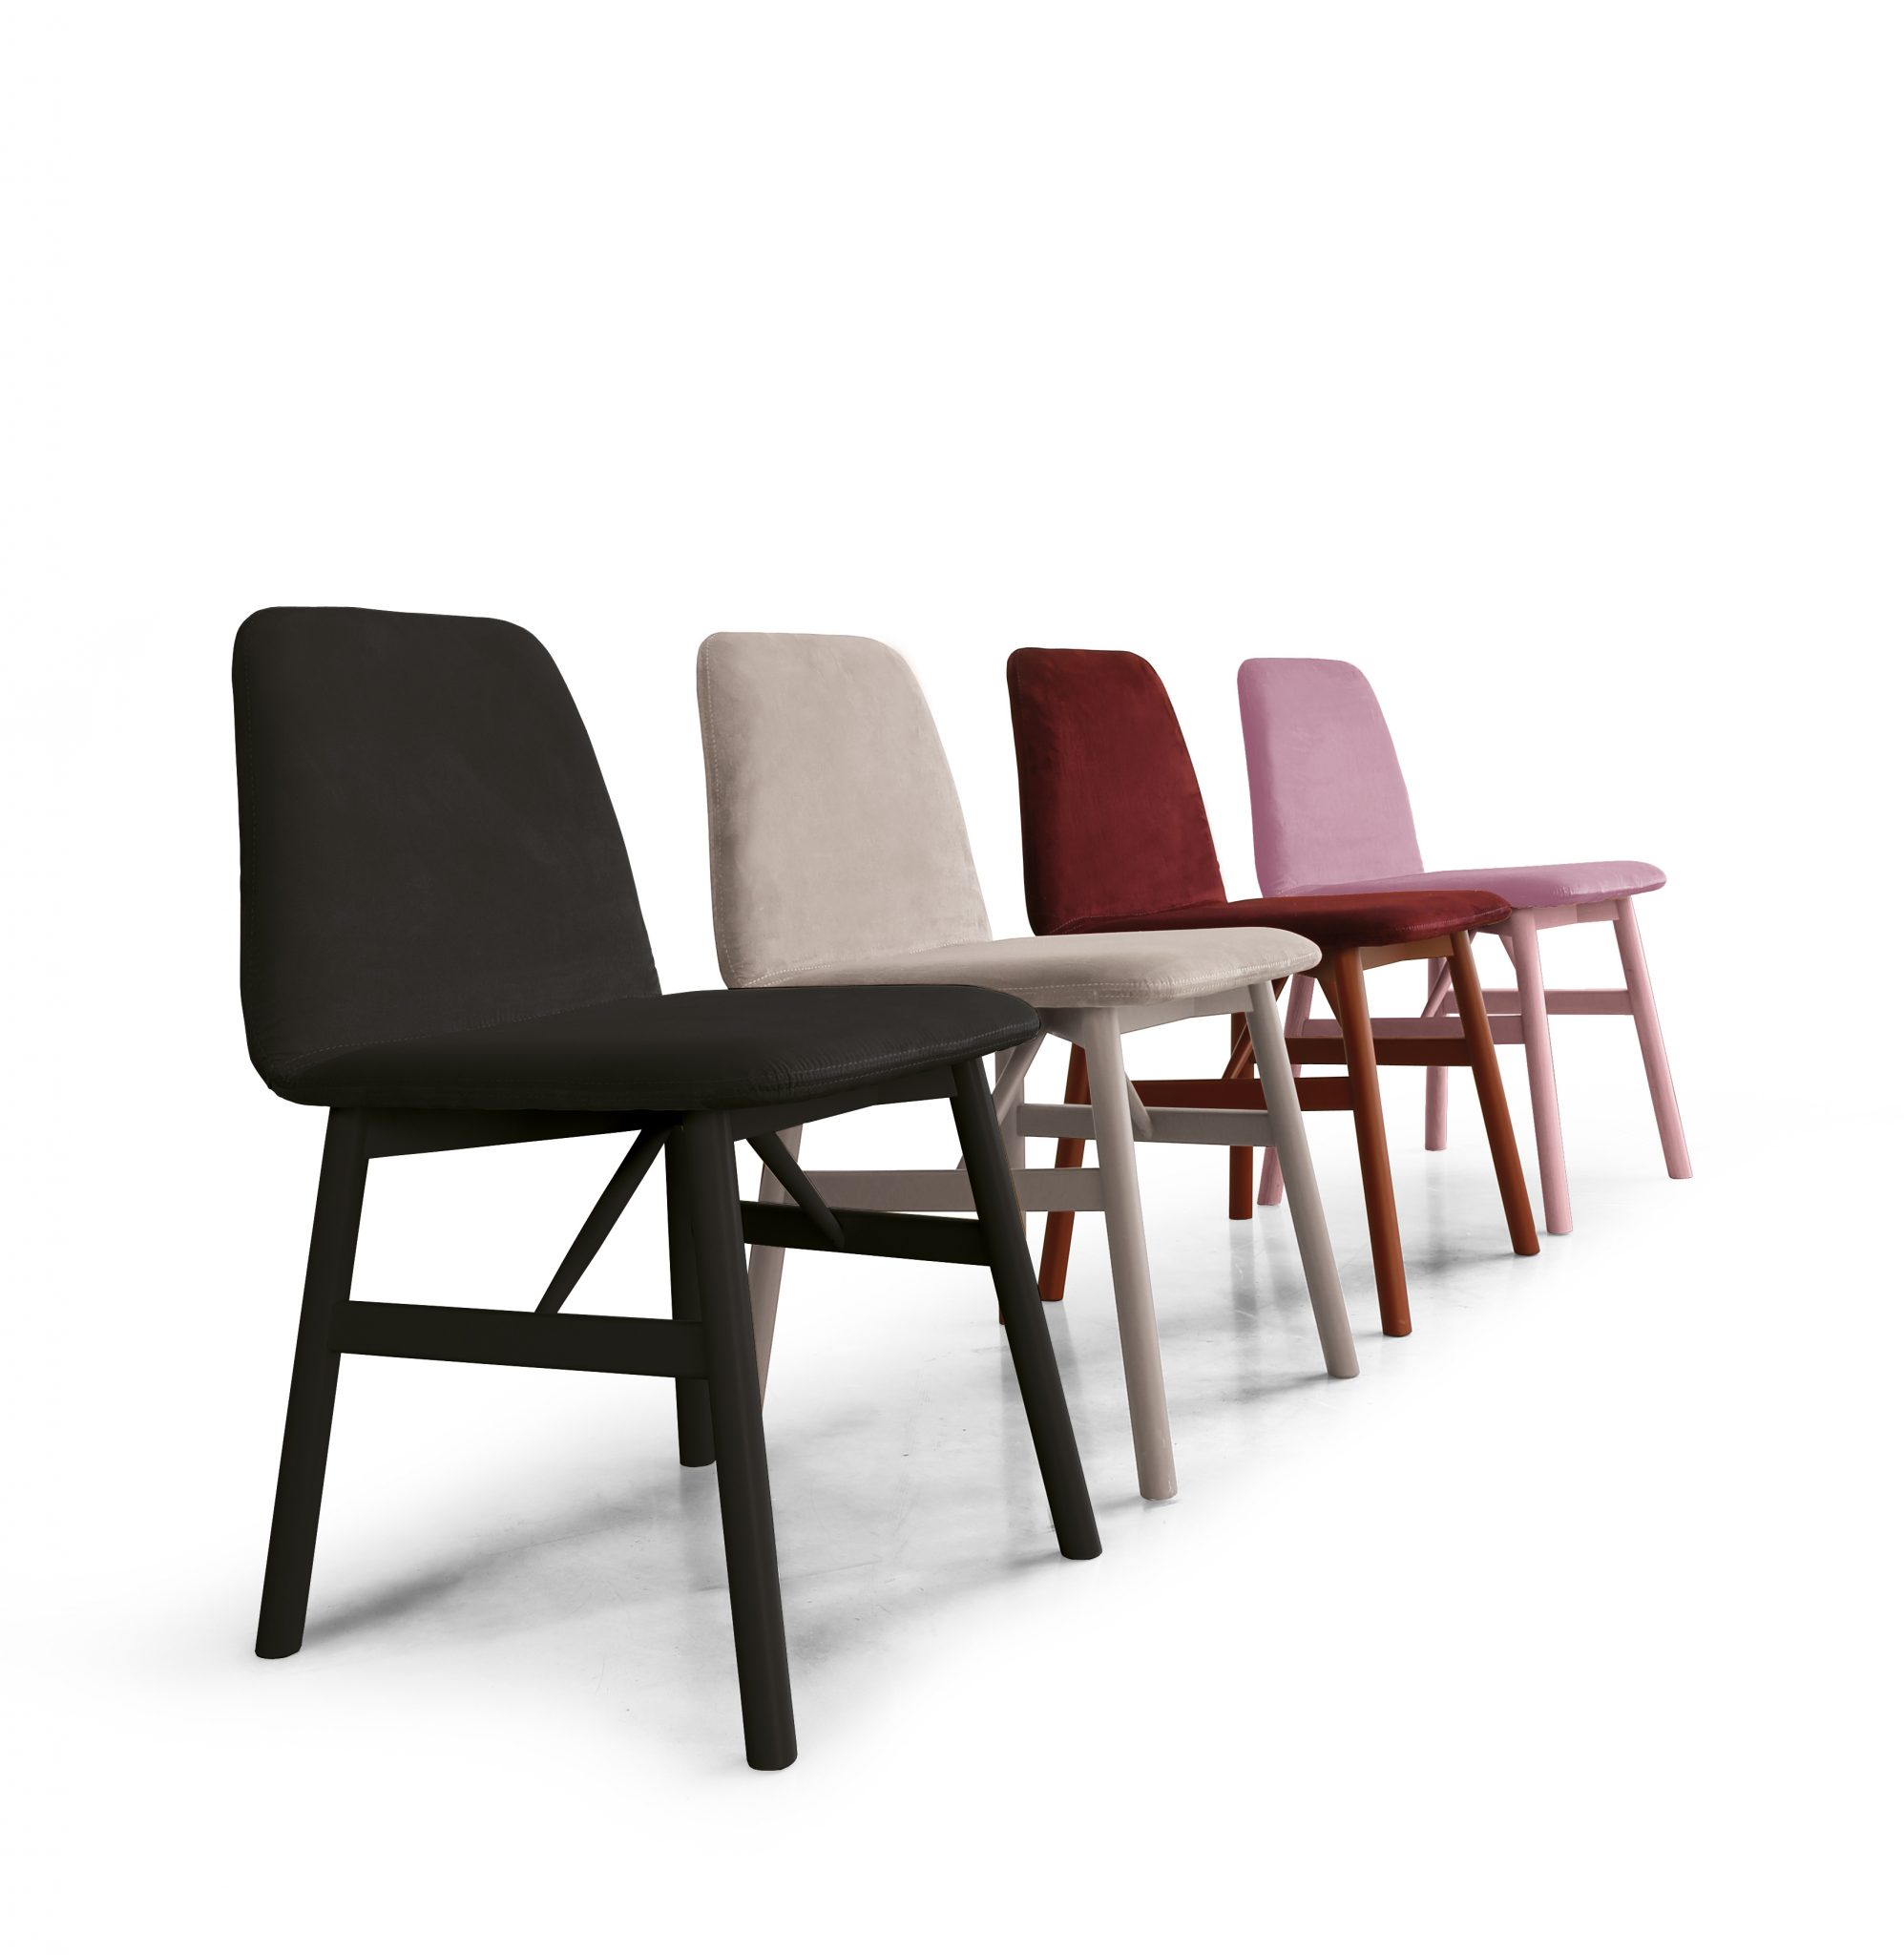 BARDOT LACQUERED AND CHAIR